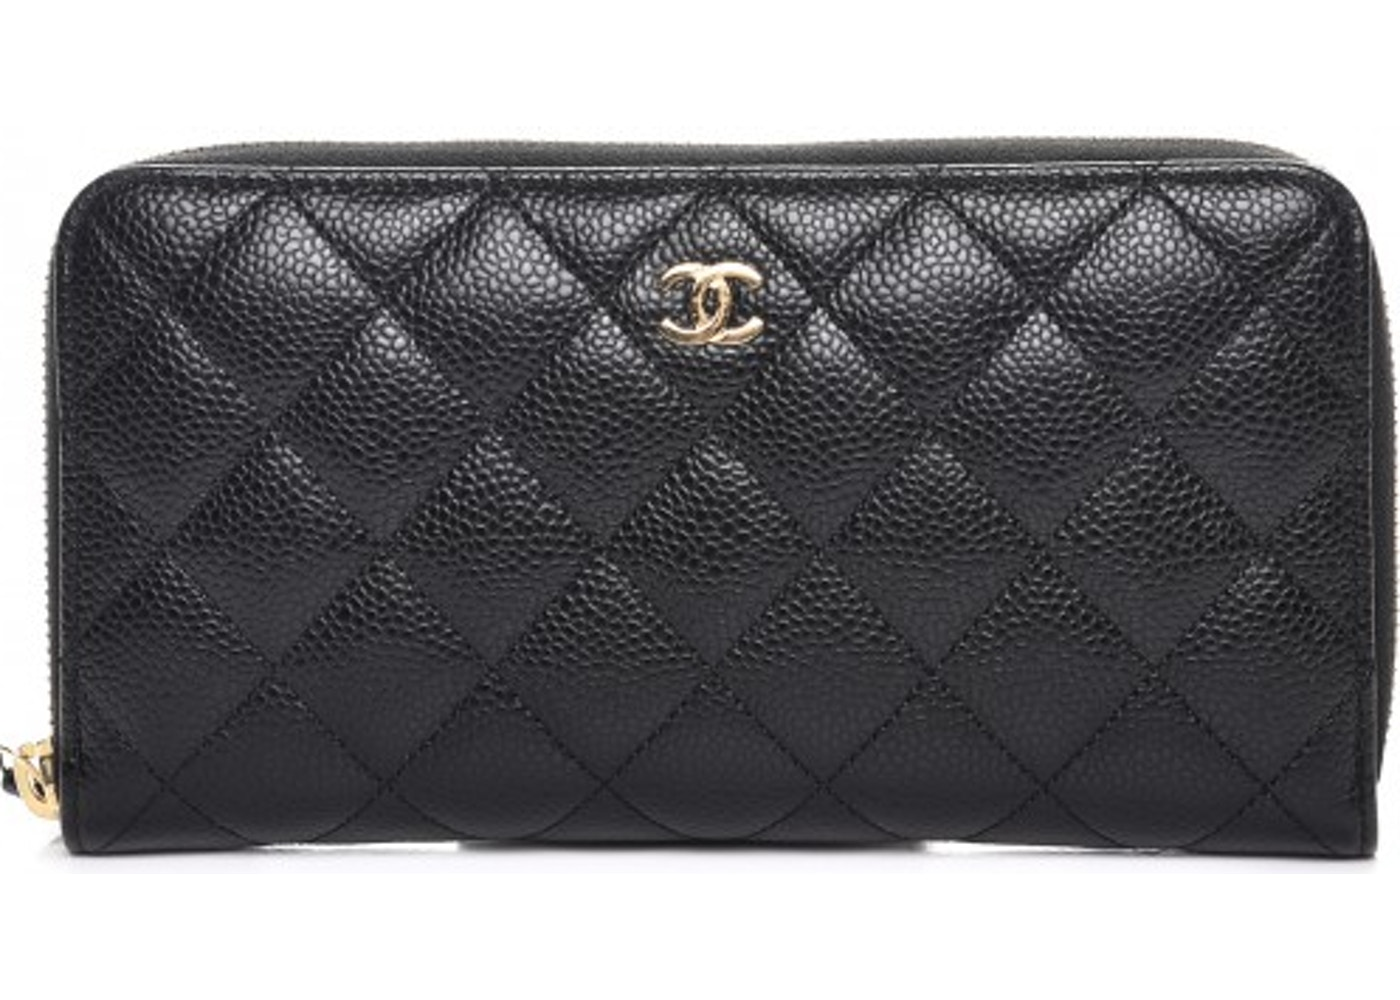 9fdadcee4a37 Chanel Gusset Zip Around Wallet Quilted Diamond Large Black. Quilted  Diamond Large Black